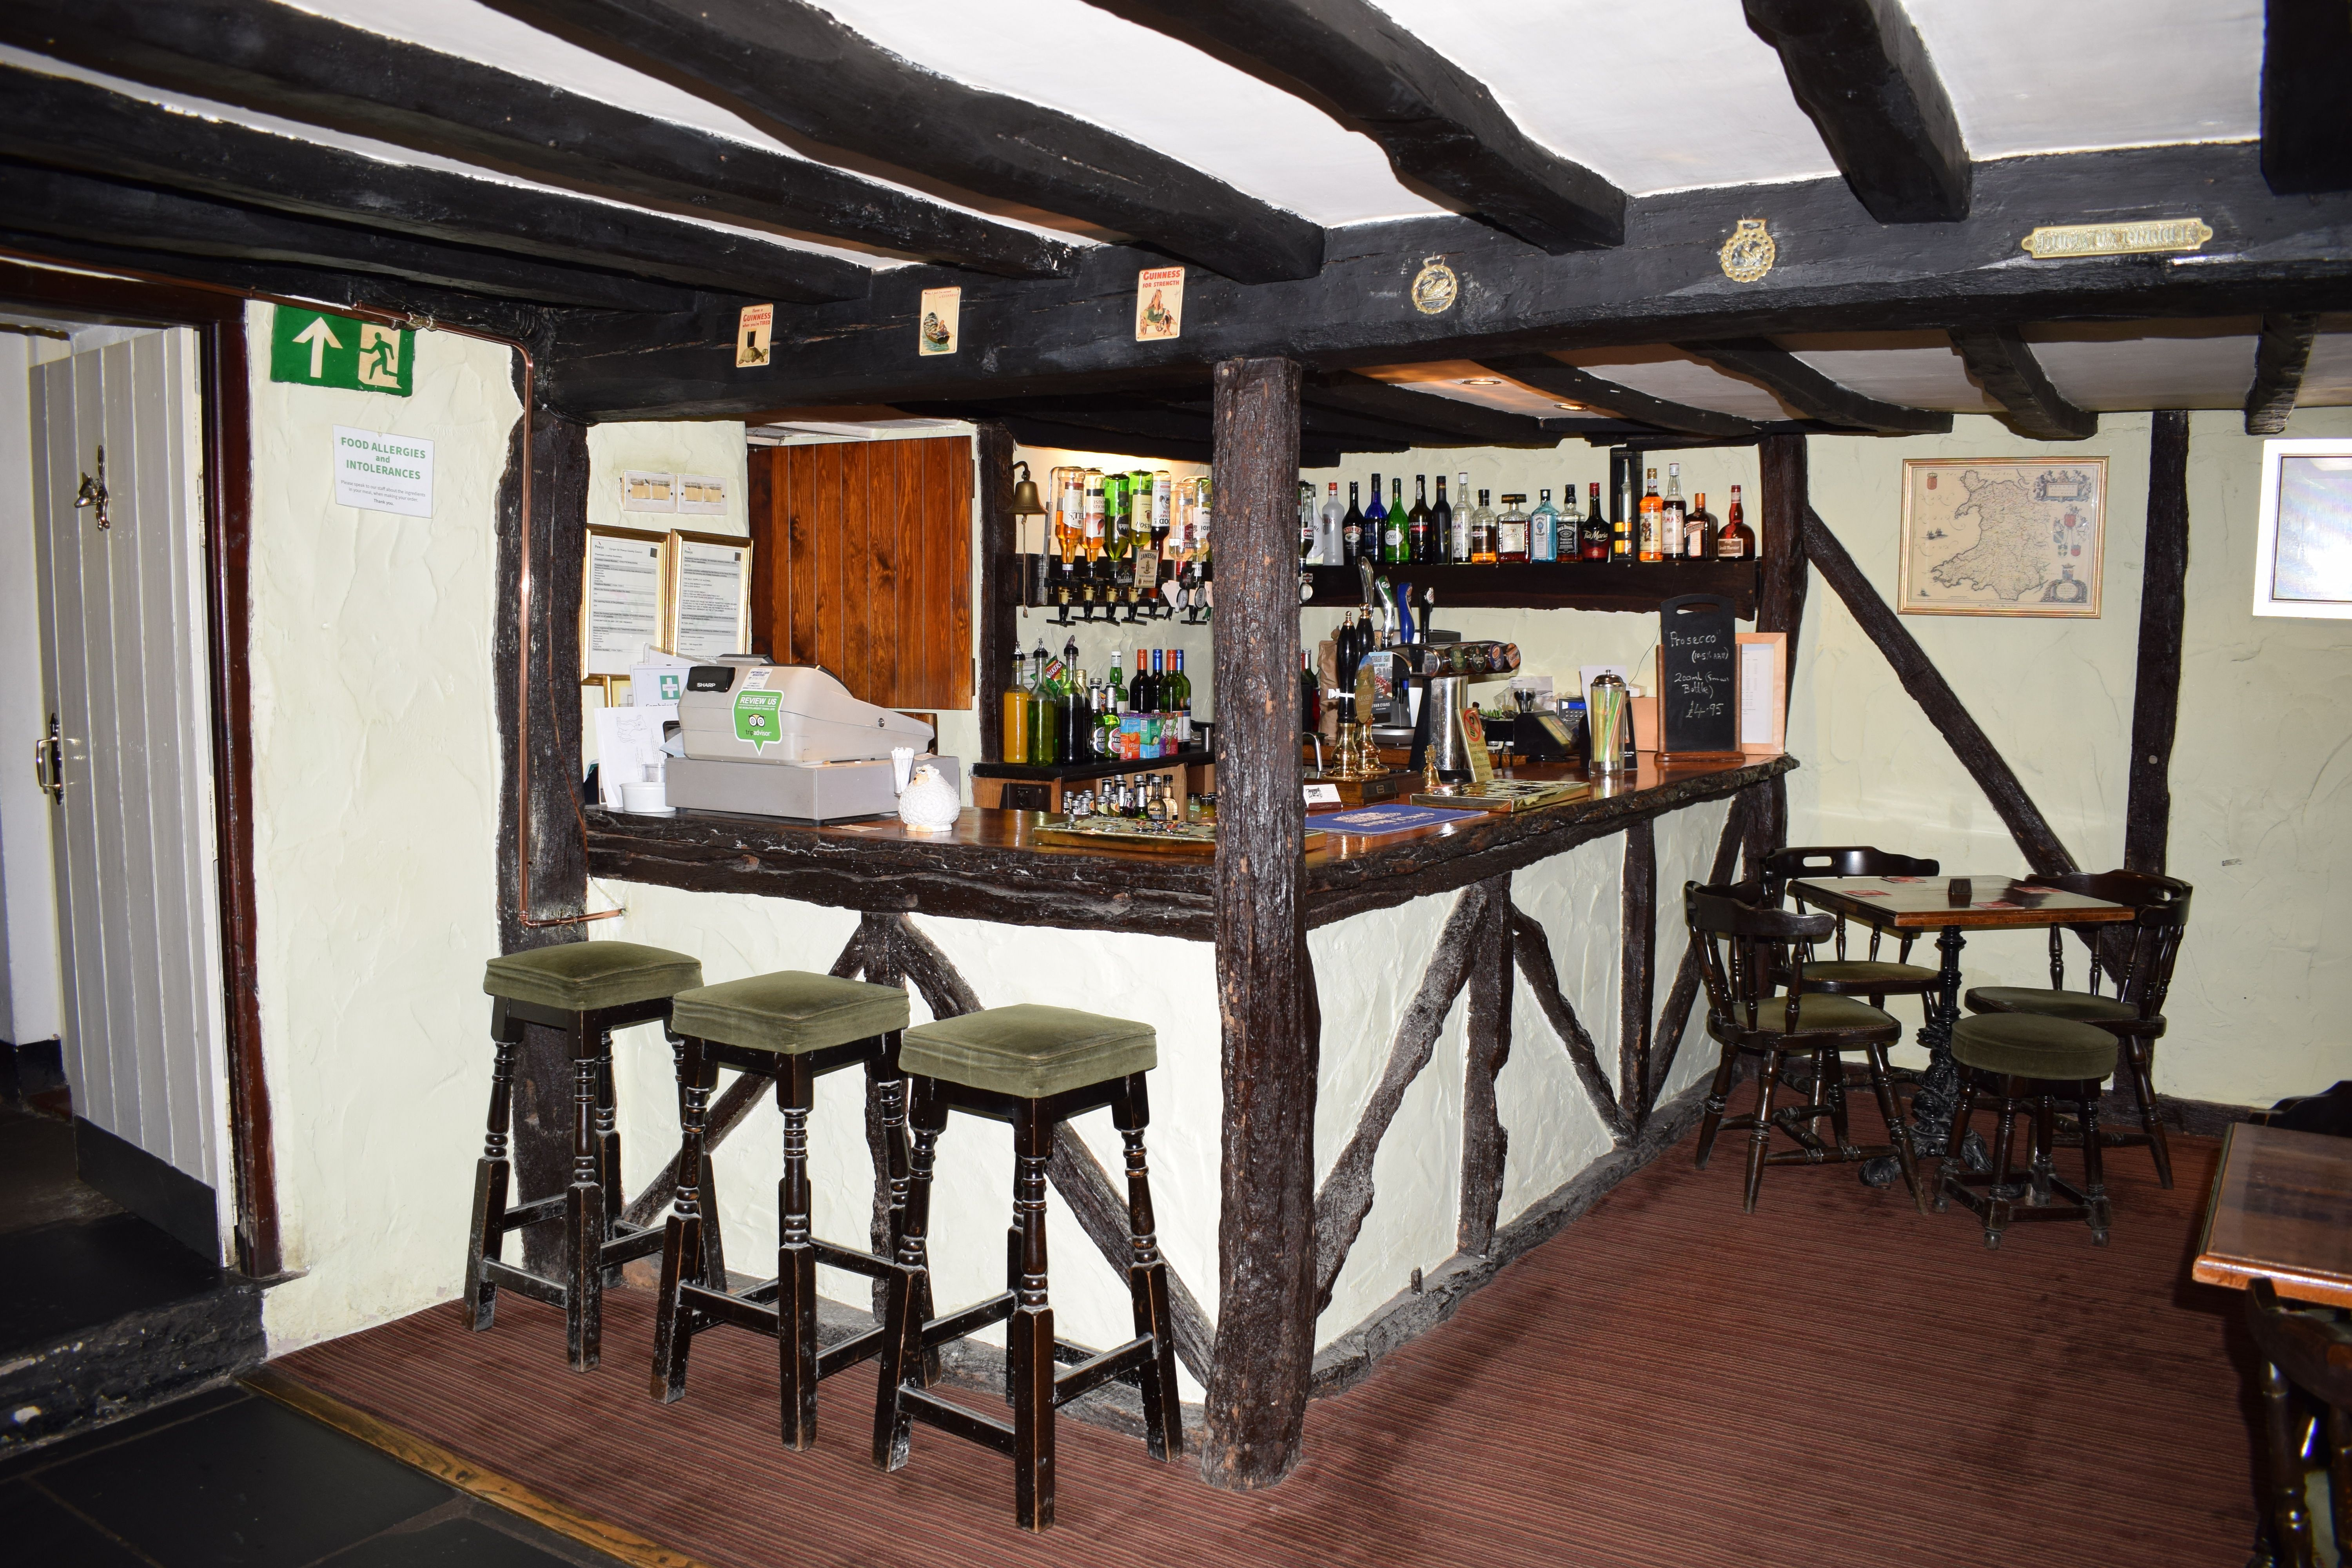 500-year-old Welsh Inn set to brew up some interest